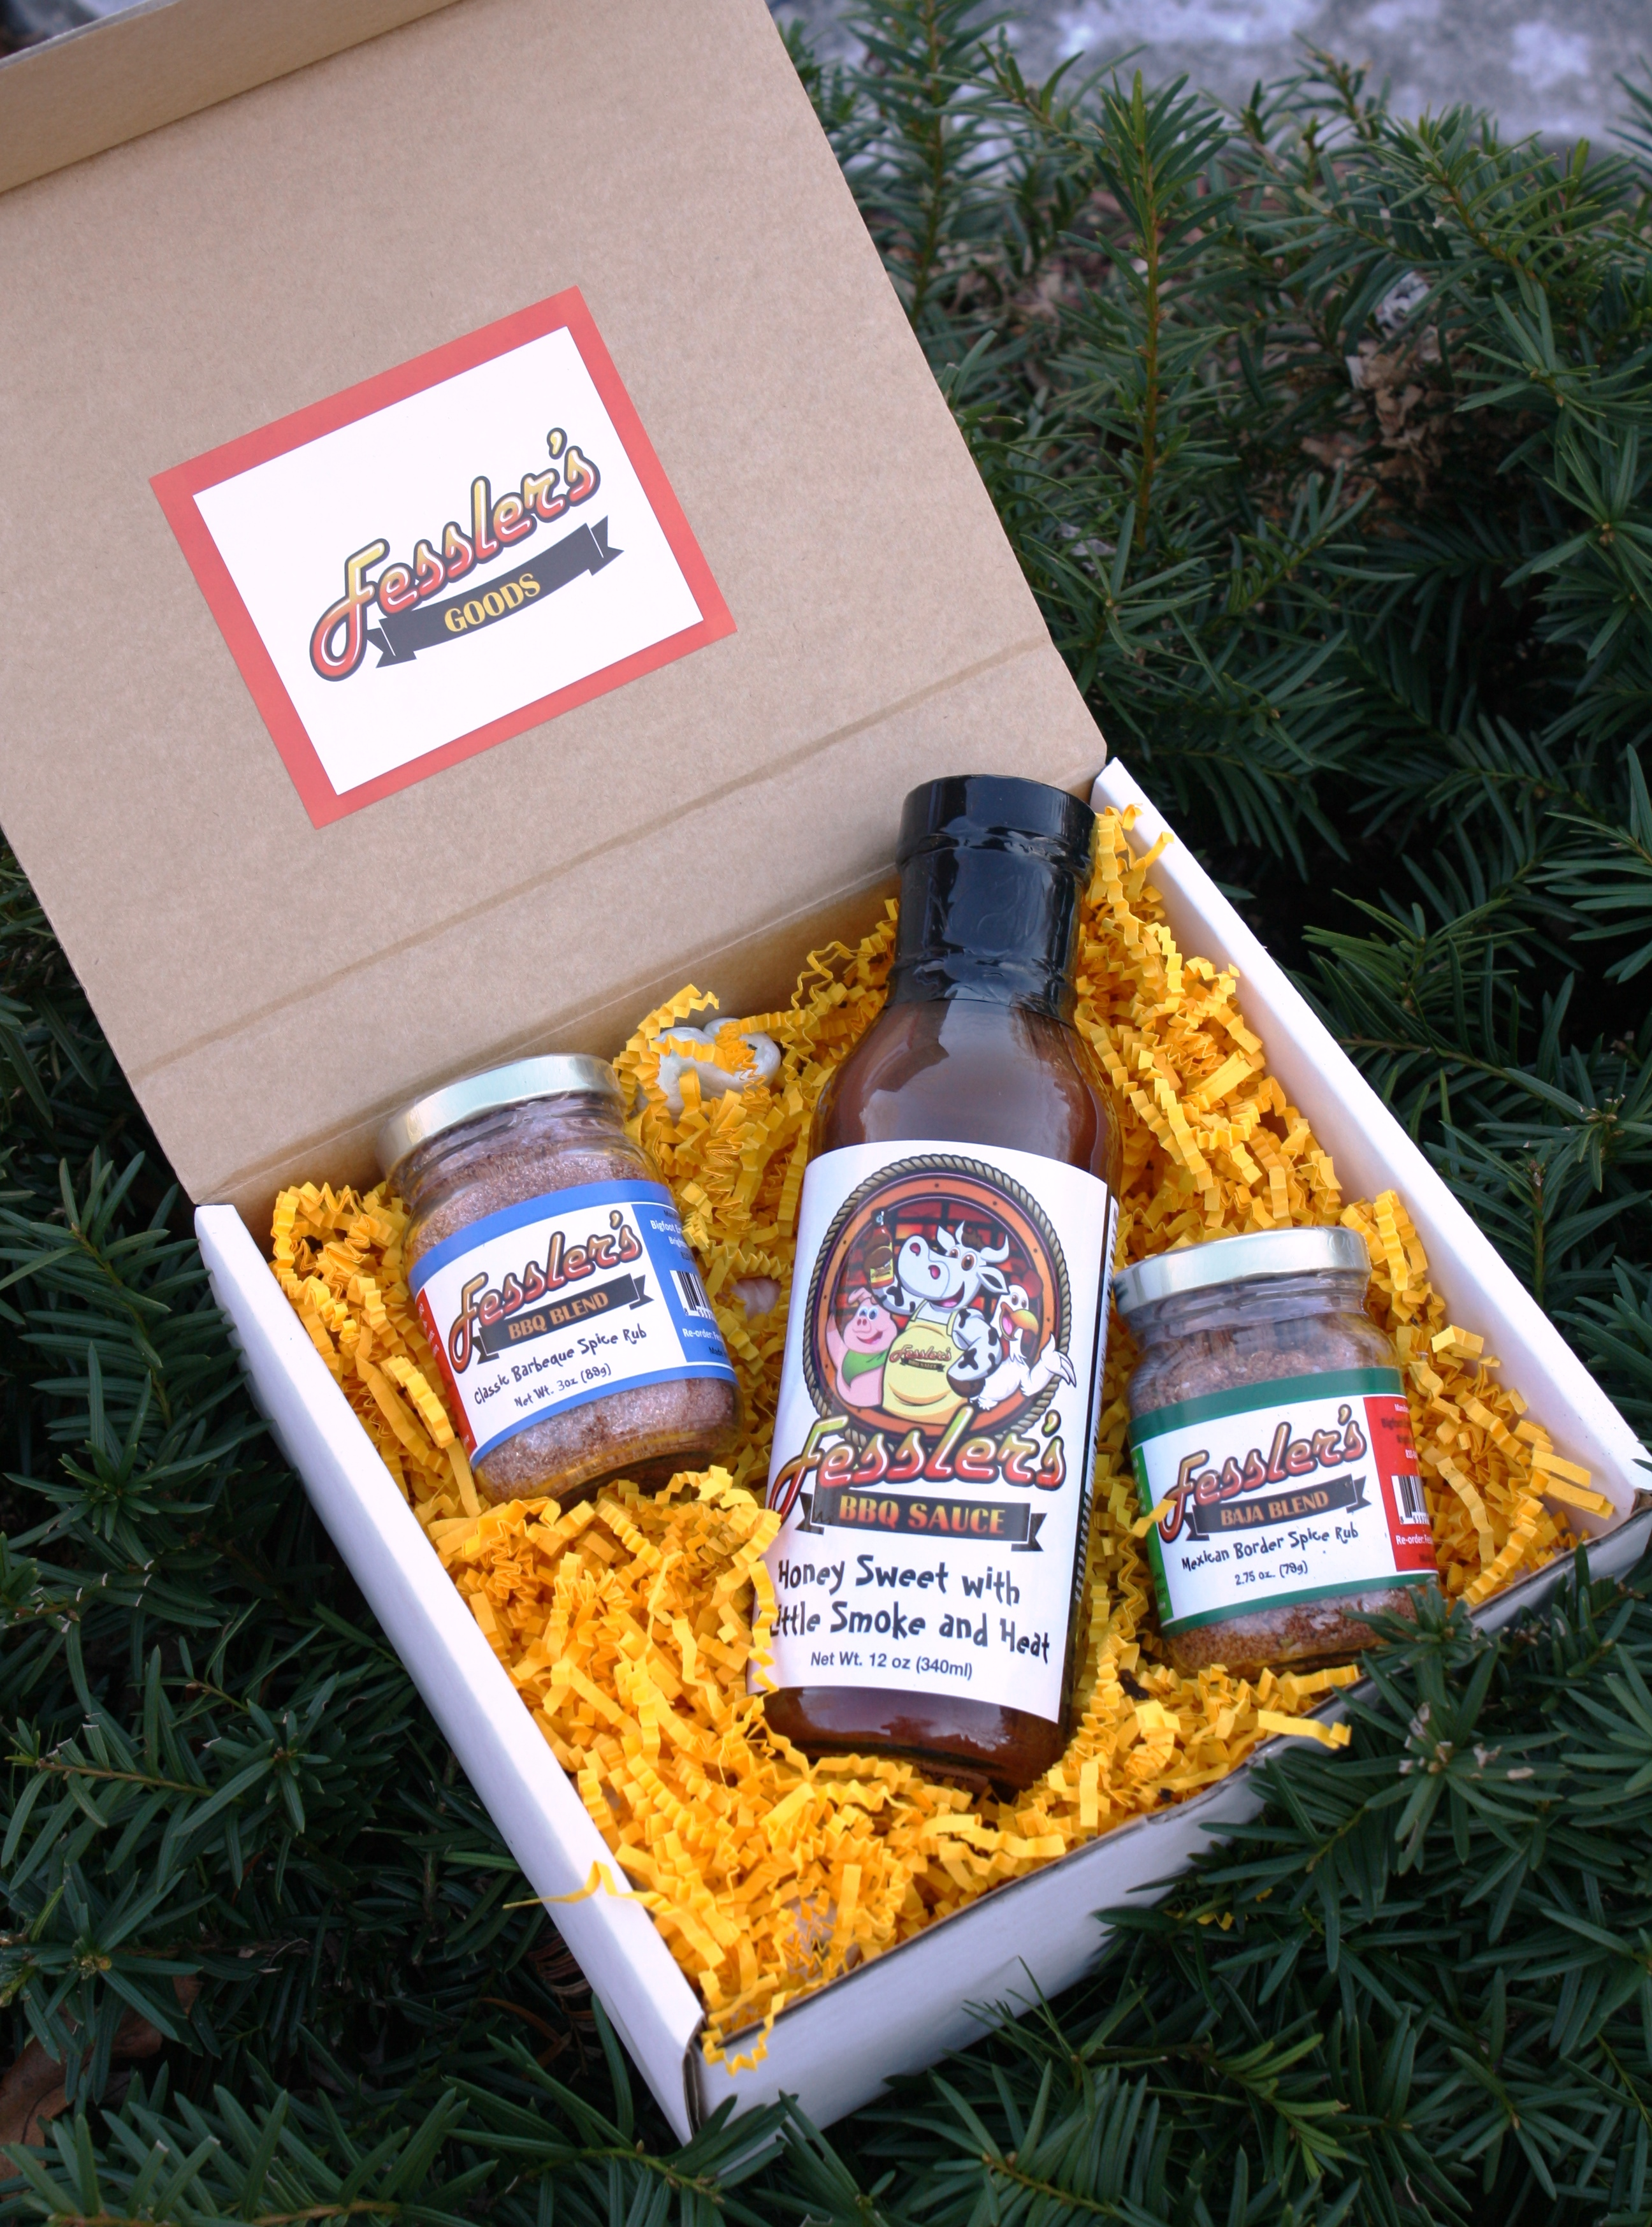 Barbecue Sauce Spice Gift Box